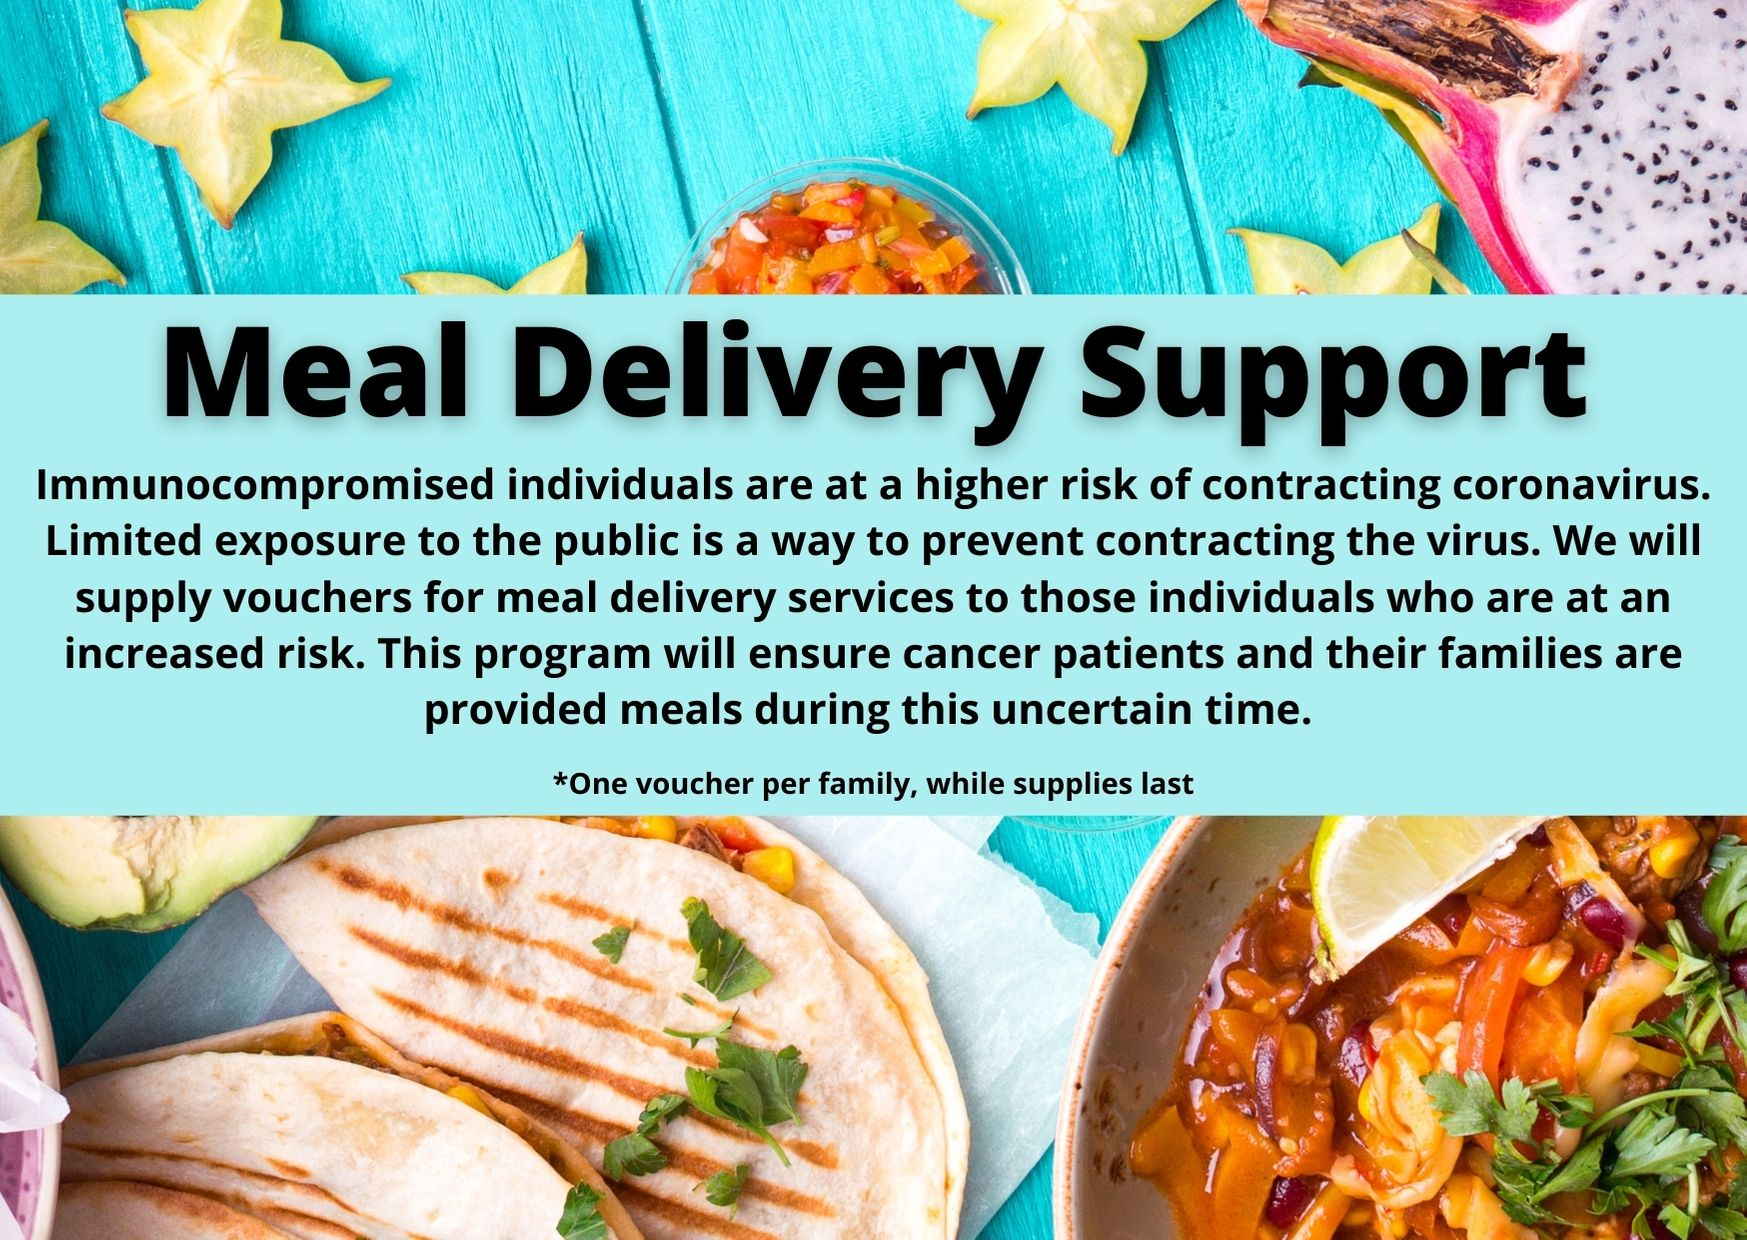 Meal Delivery Support-updated 10.19.2020